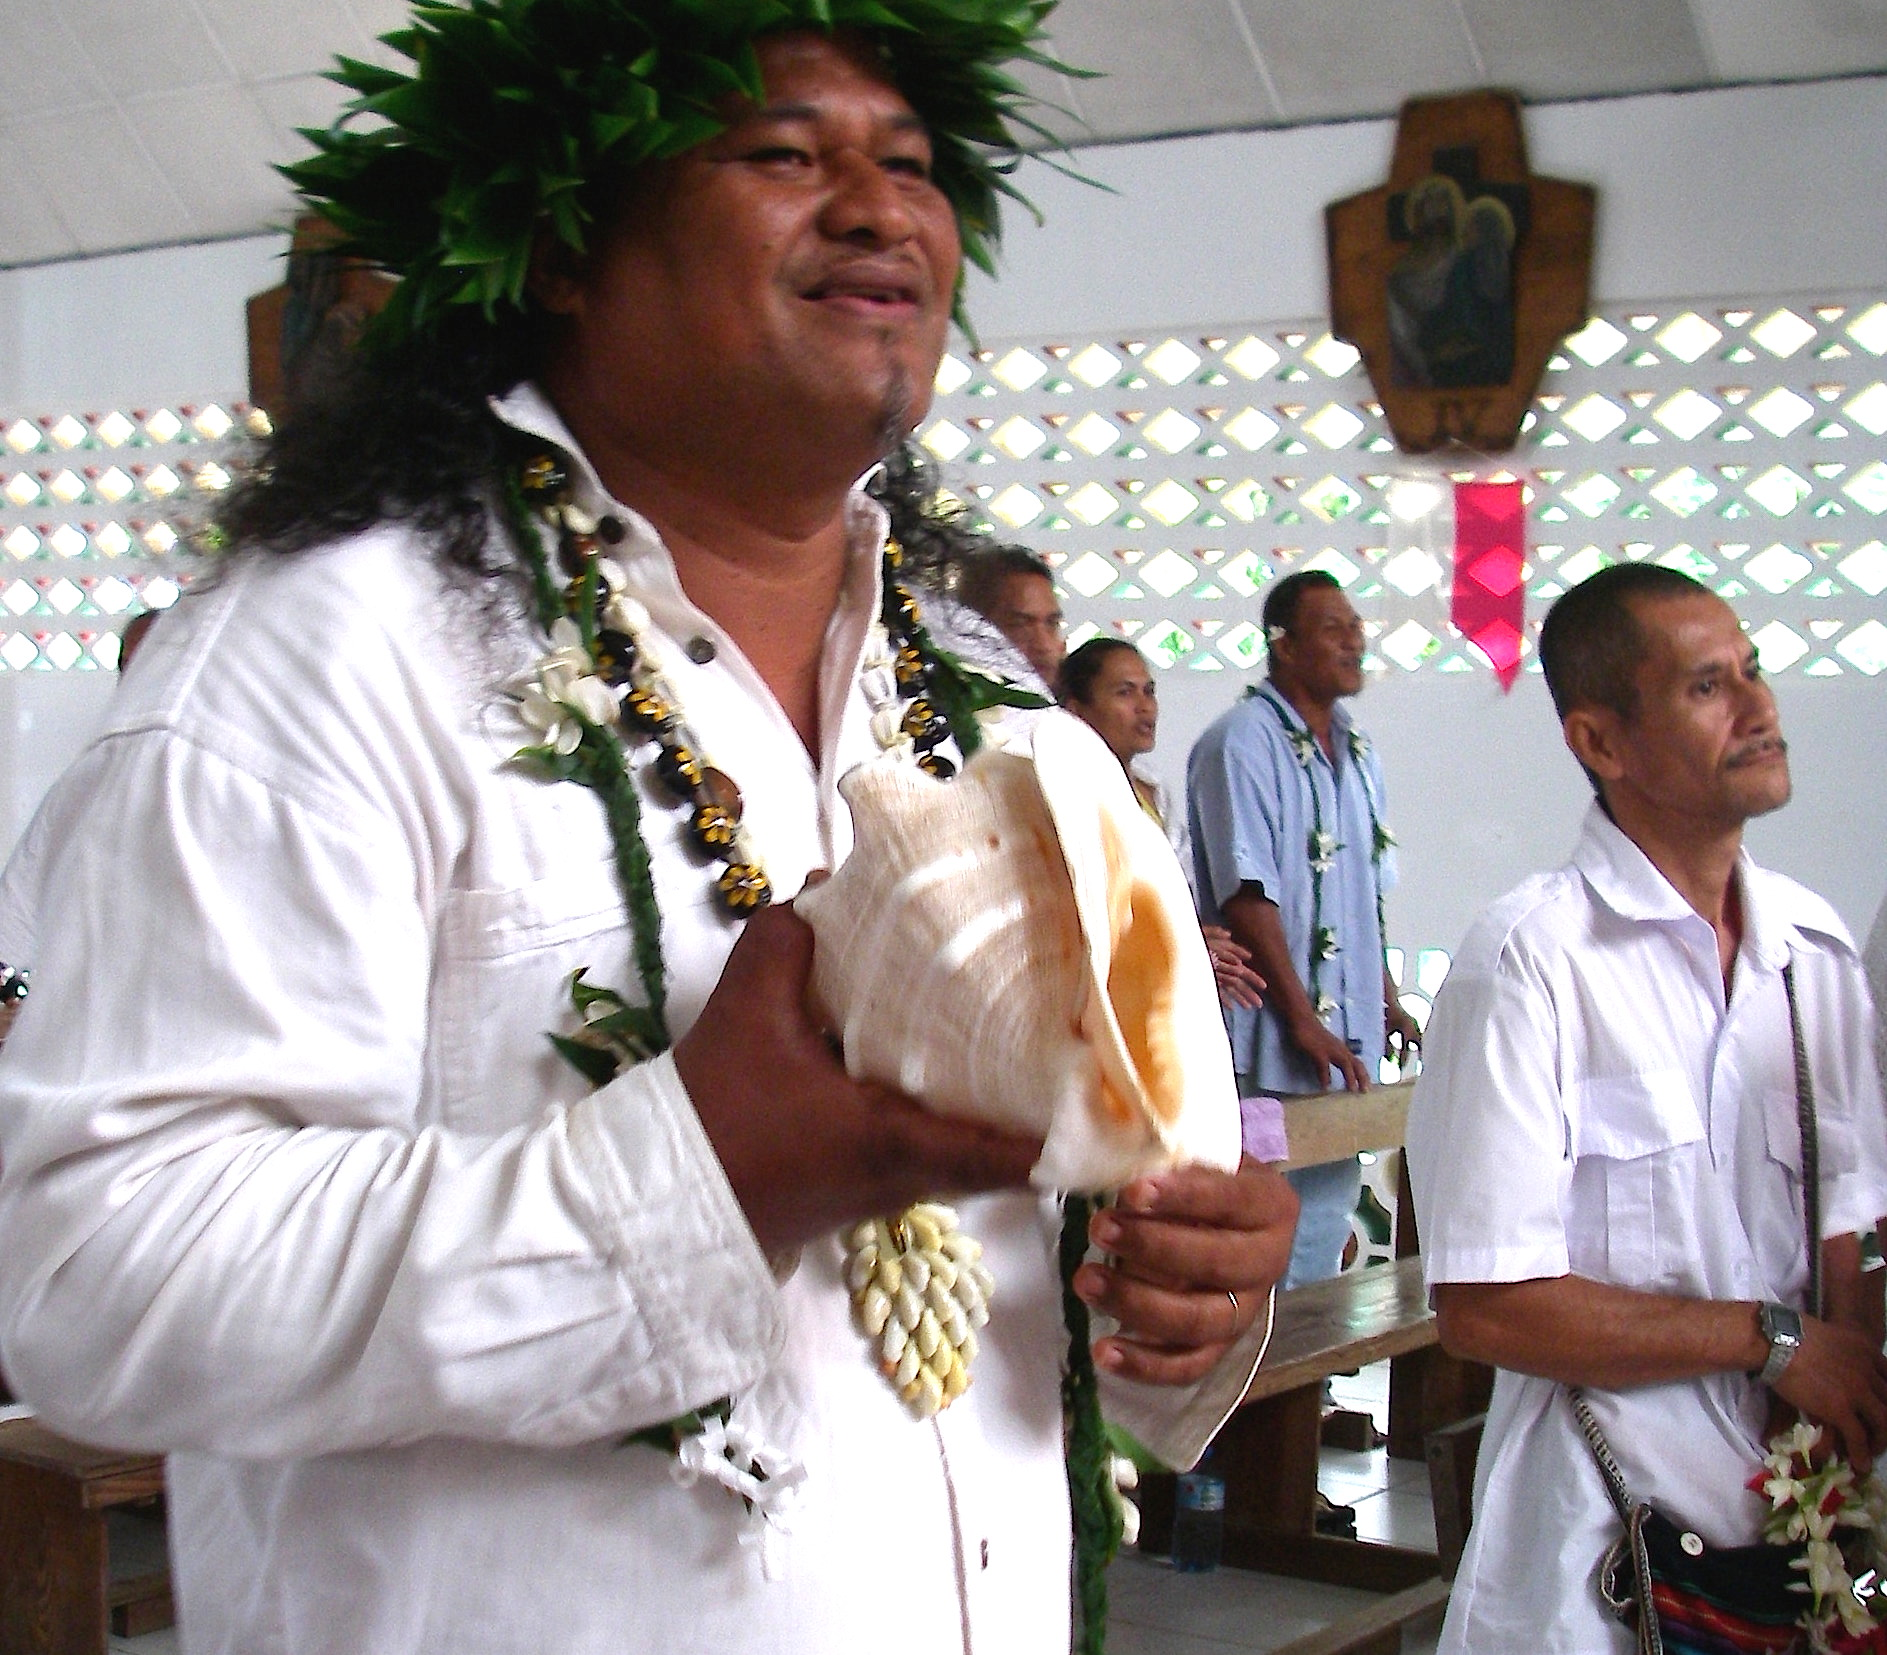 35. A Polynesian Christian brought his traditional conch shell horn to church every Sunday in order to praise the Lord during certain hymns